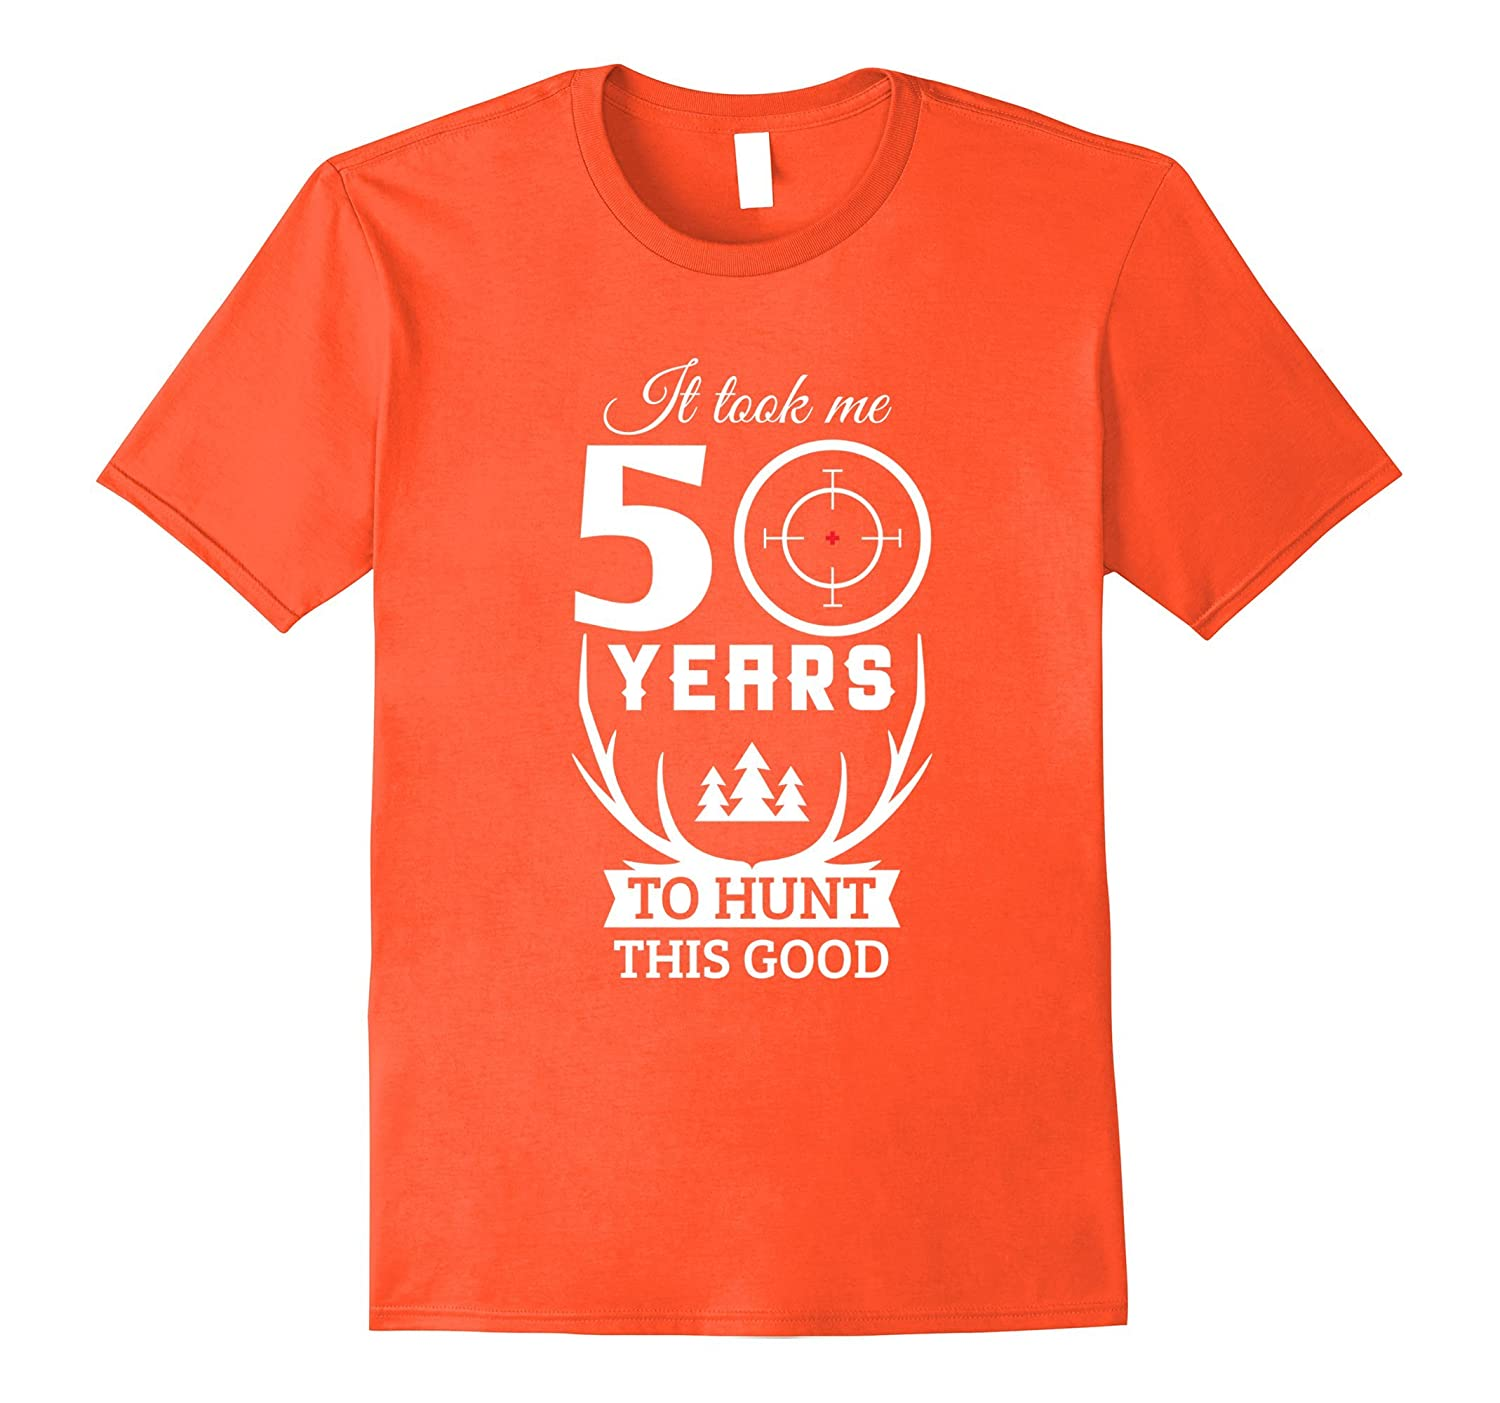 50 Years Old Happy 50th Birthday For Hunters FL